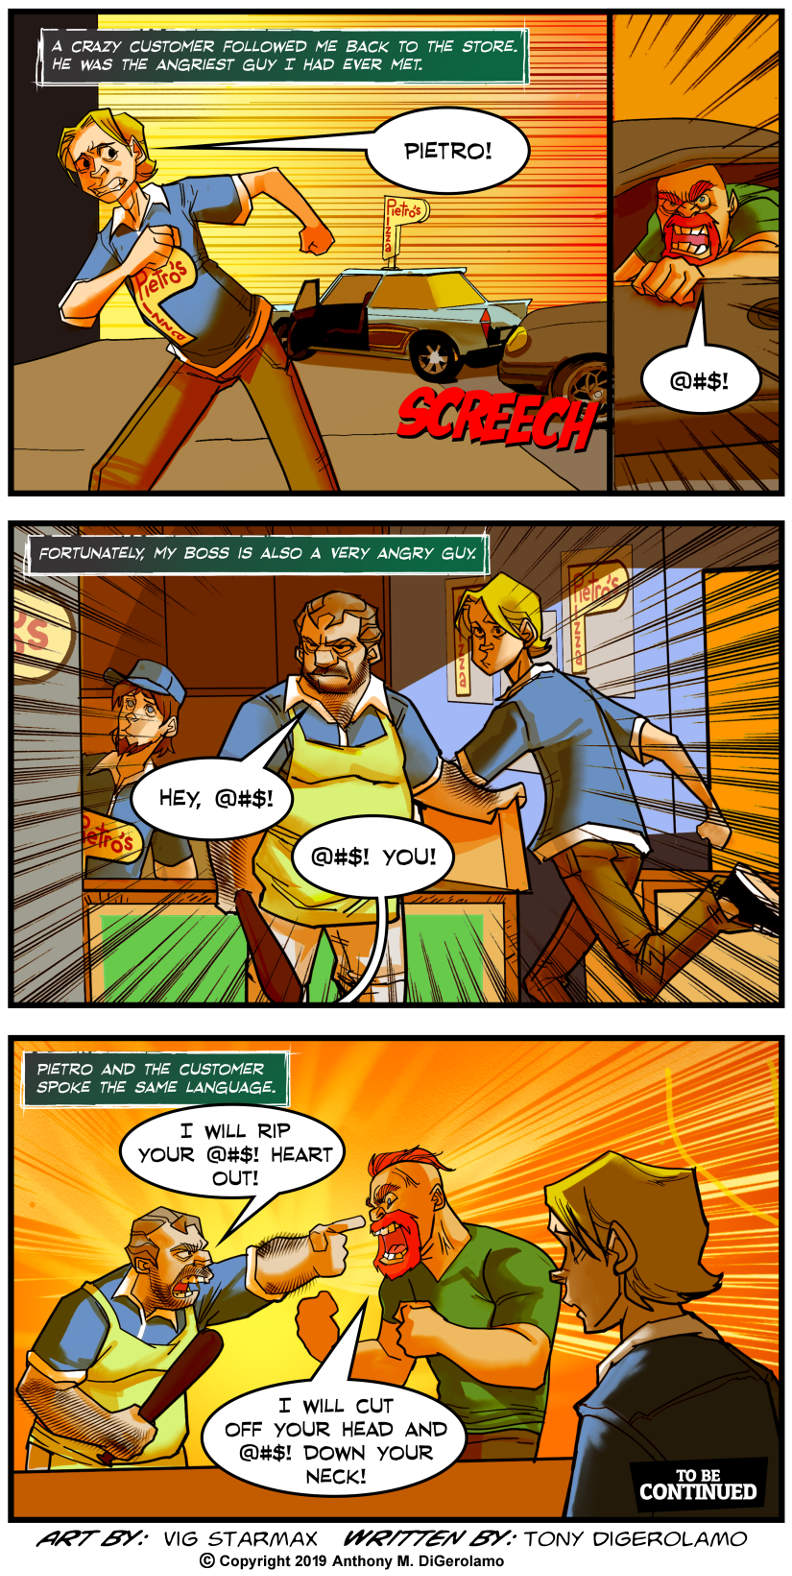 Tales of Pizza: The Customer is Always Angry